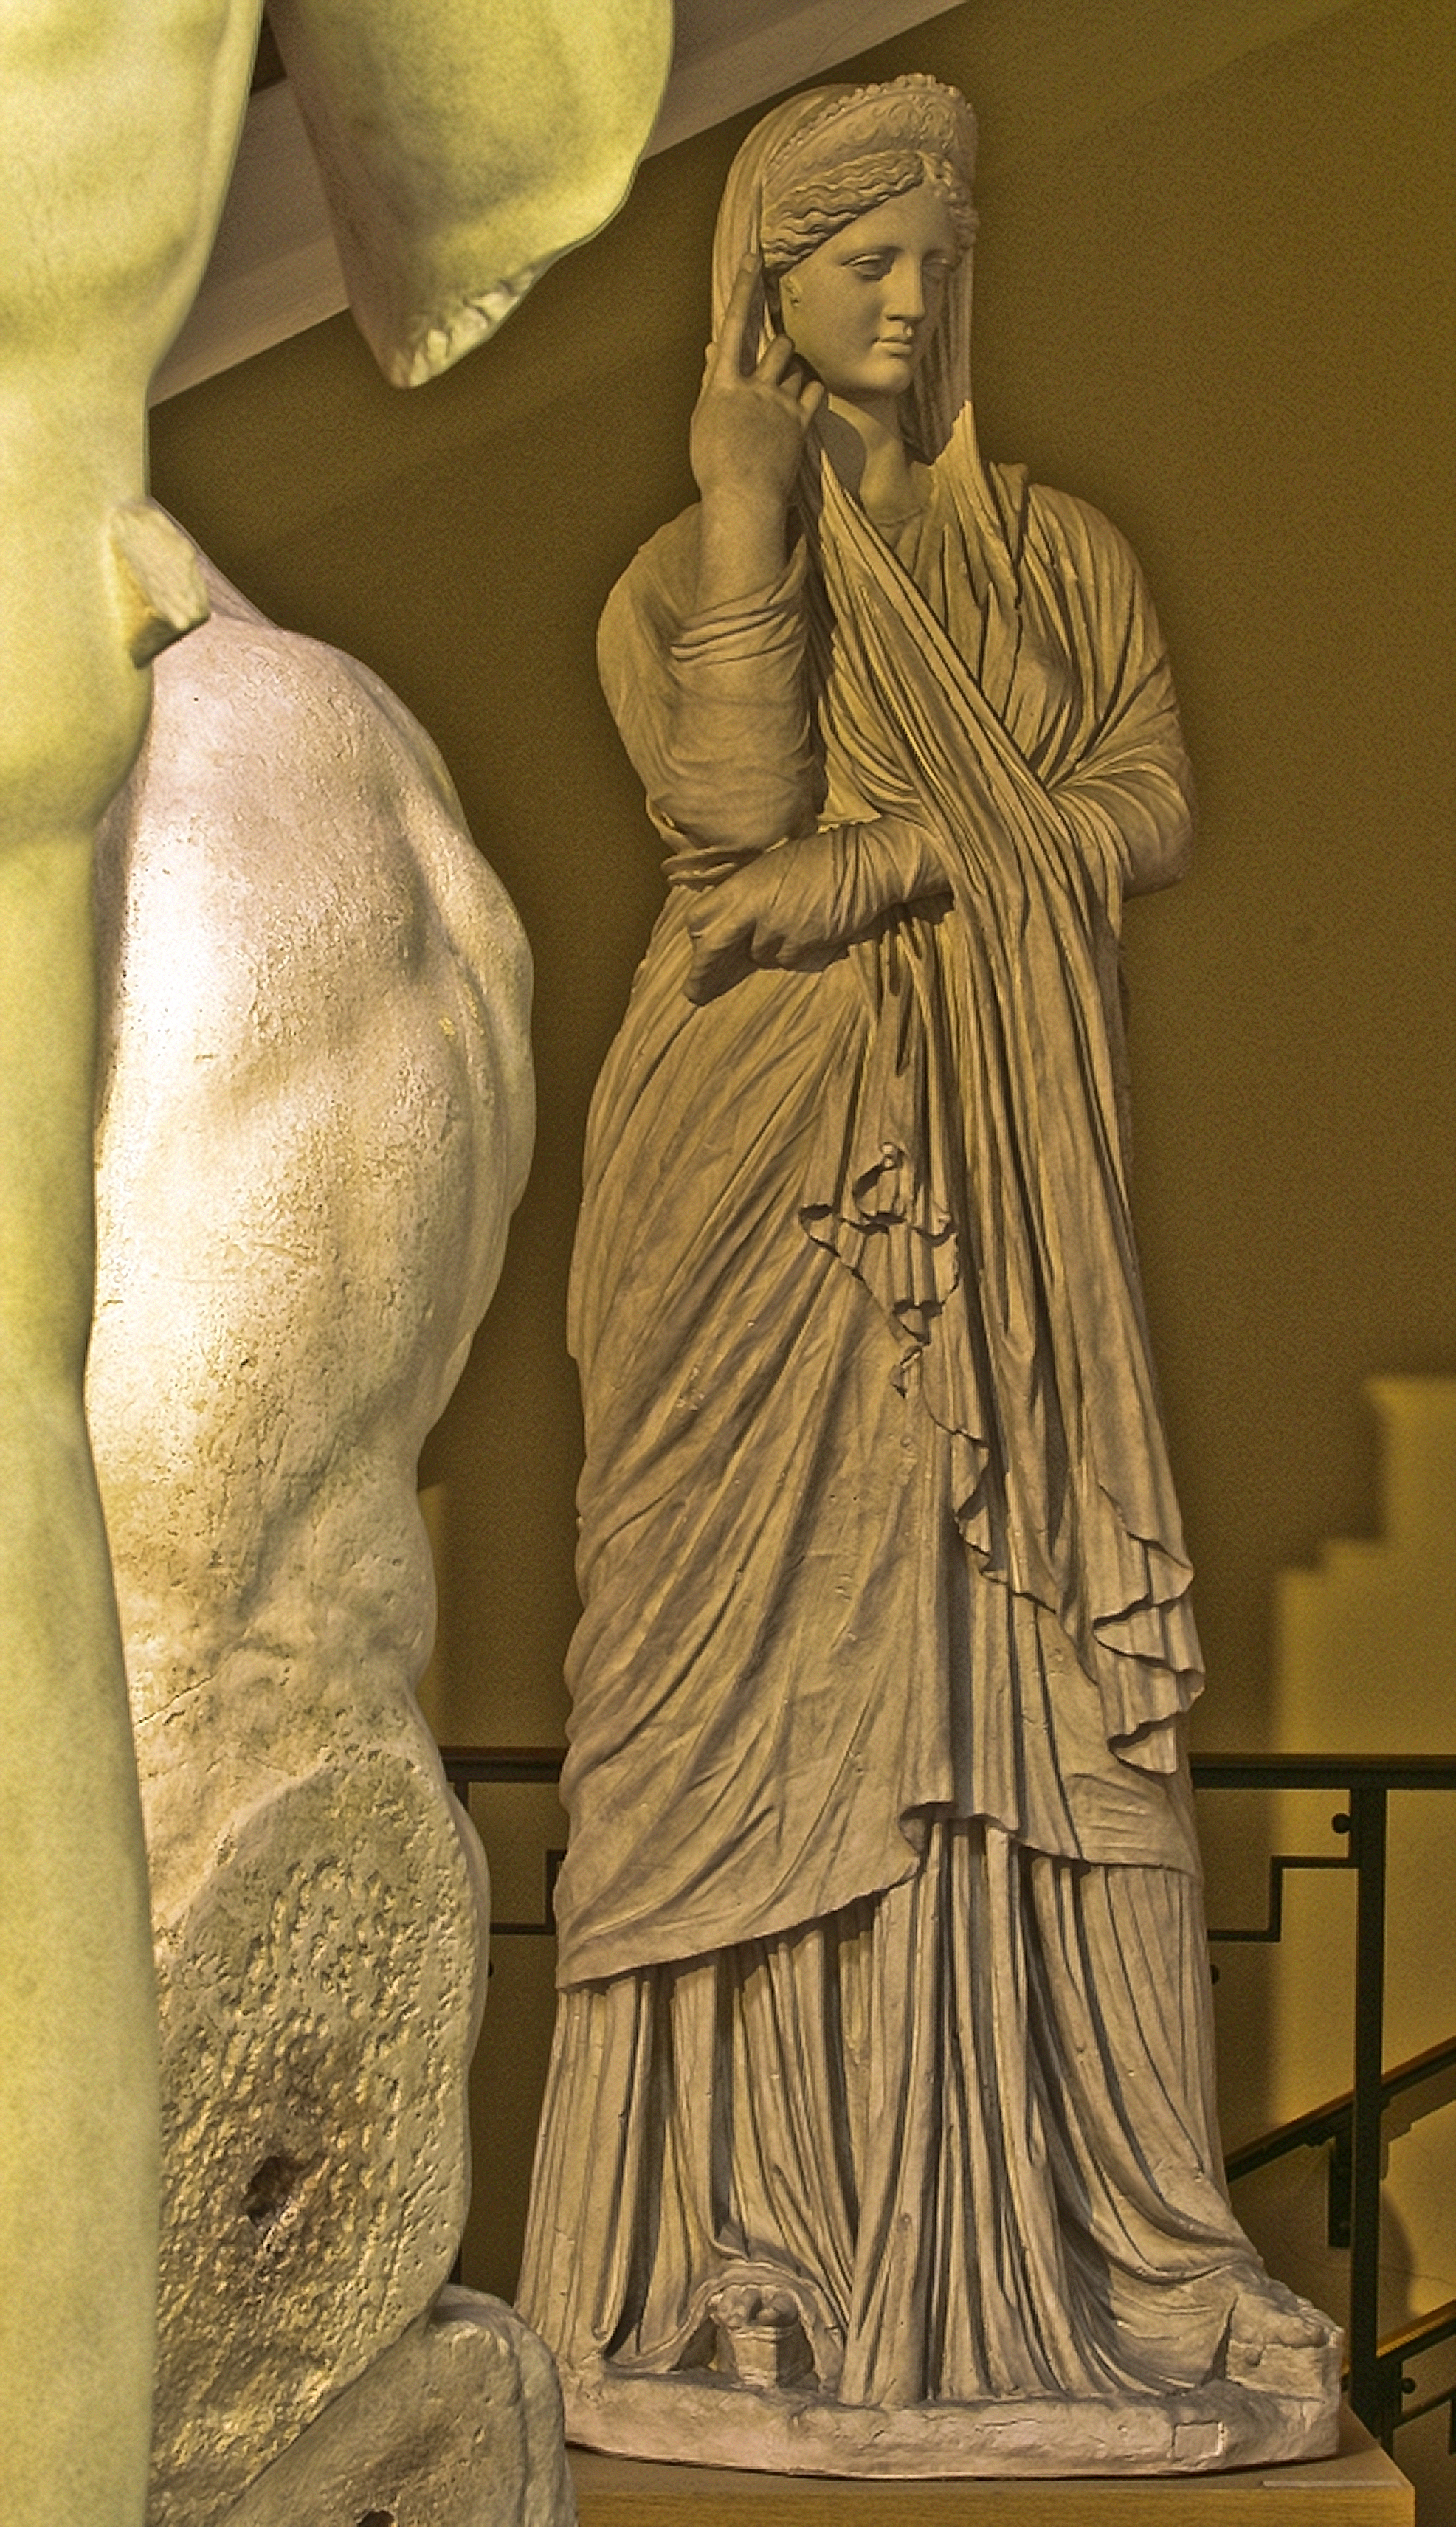 Statue of a Woman, Woman in palla, a shawl with crown worn over head and shawl under tunic, Braccio Nuovo, Vatican, Rome, 1, A